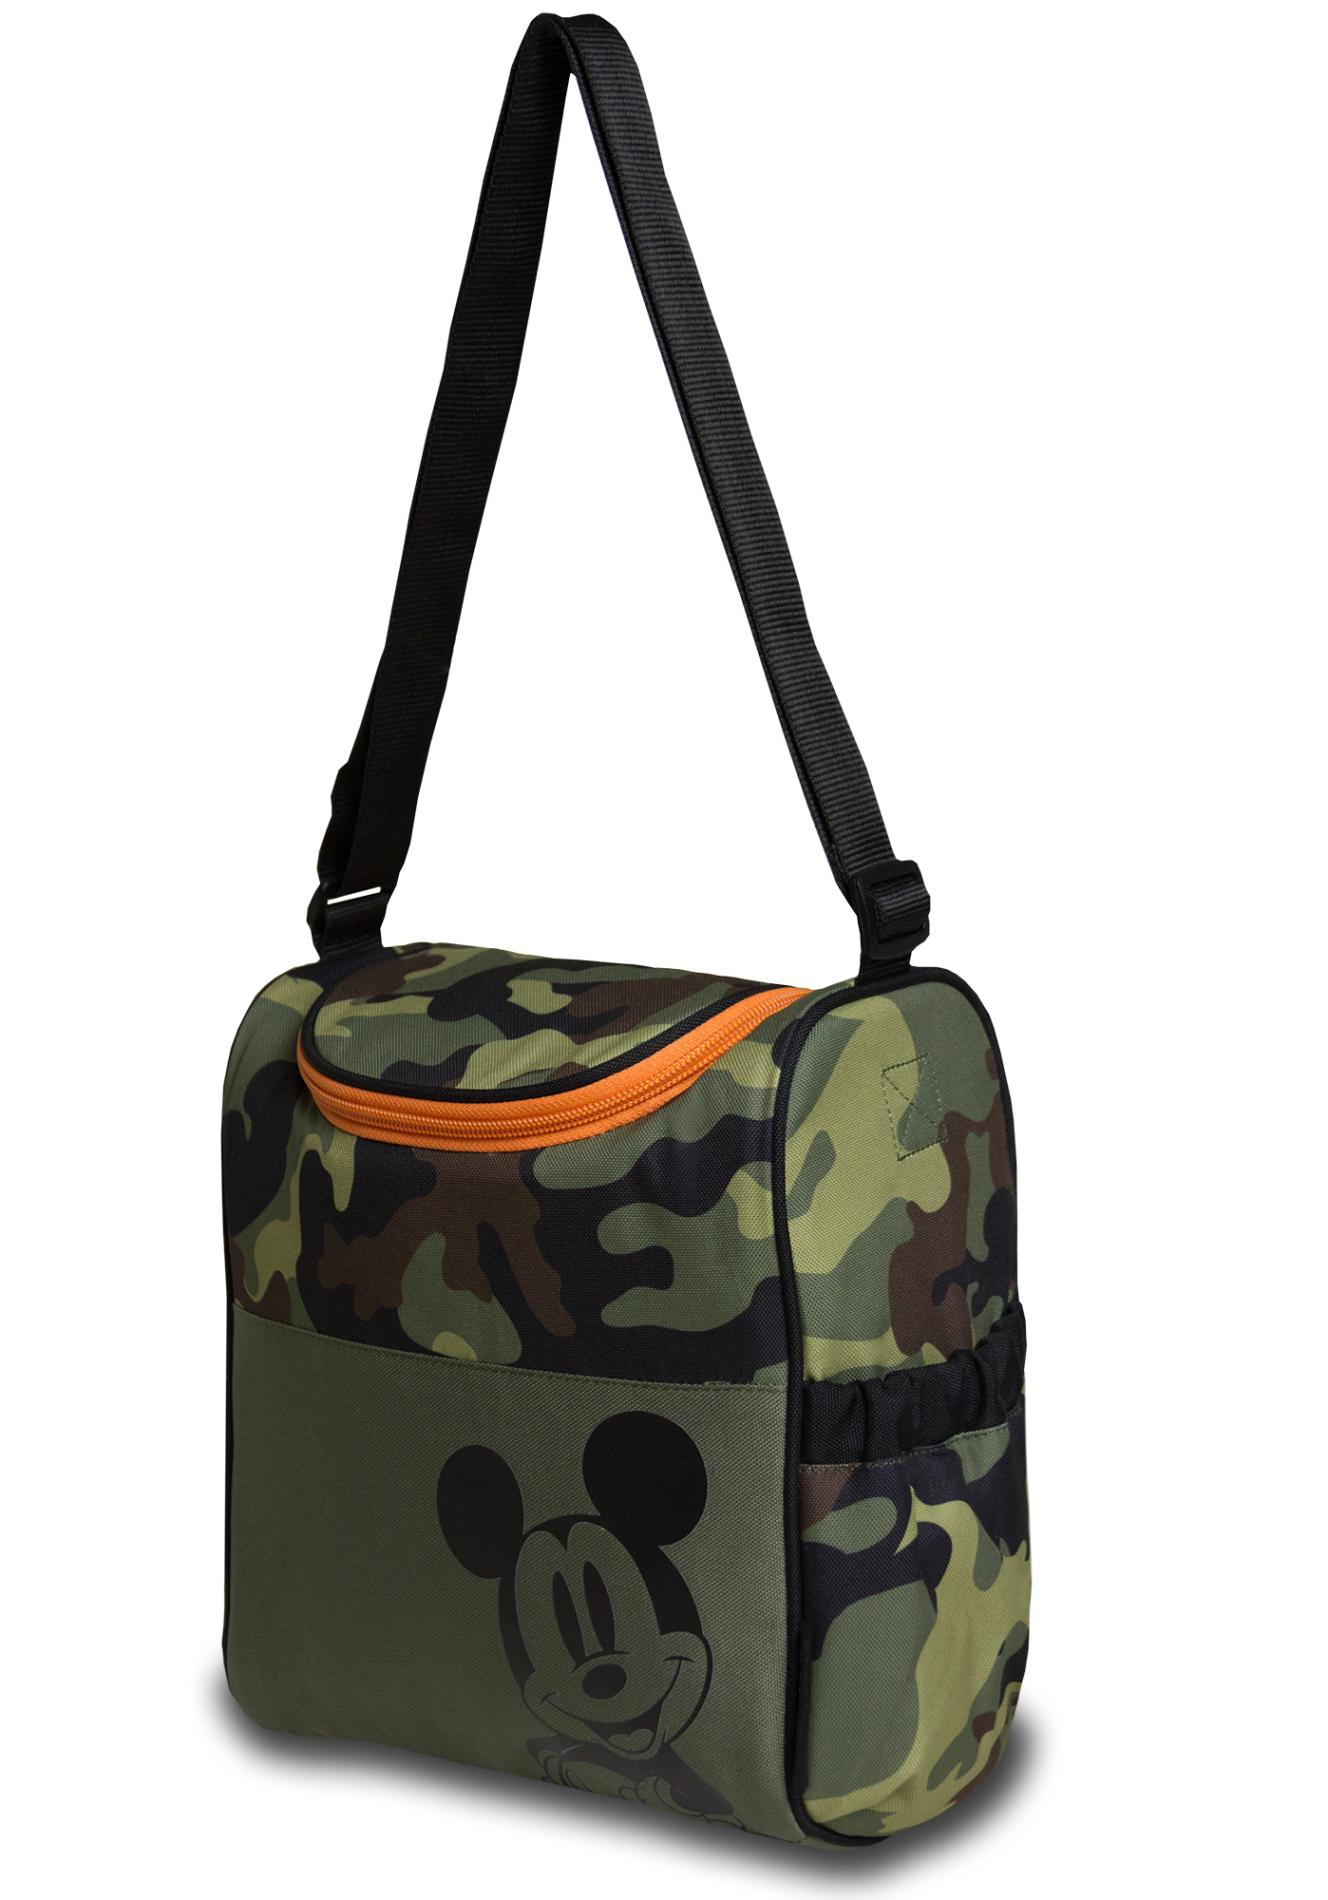 Tender Kisses Mickey Mouse Insulated Diaper Bag - Camouflage